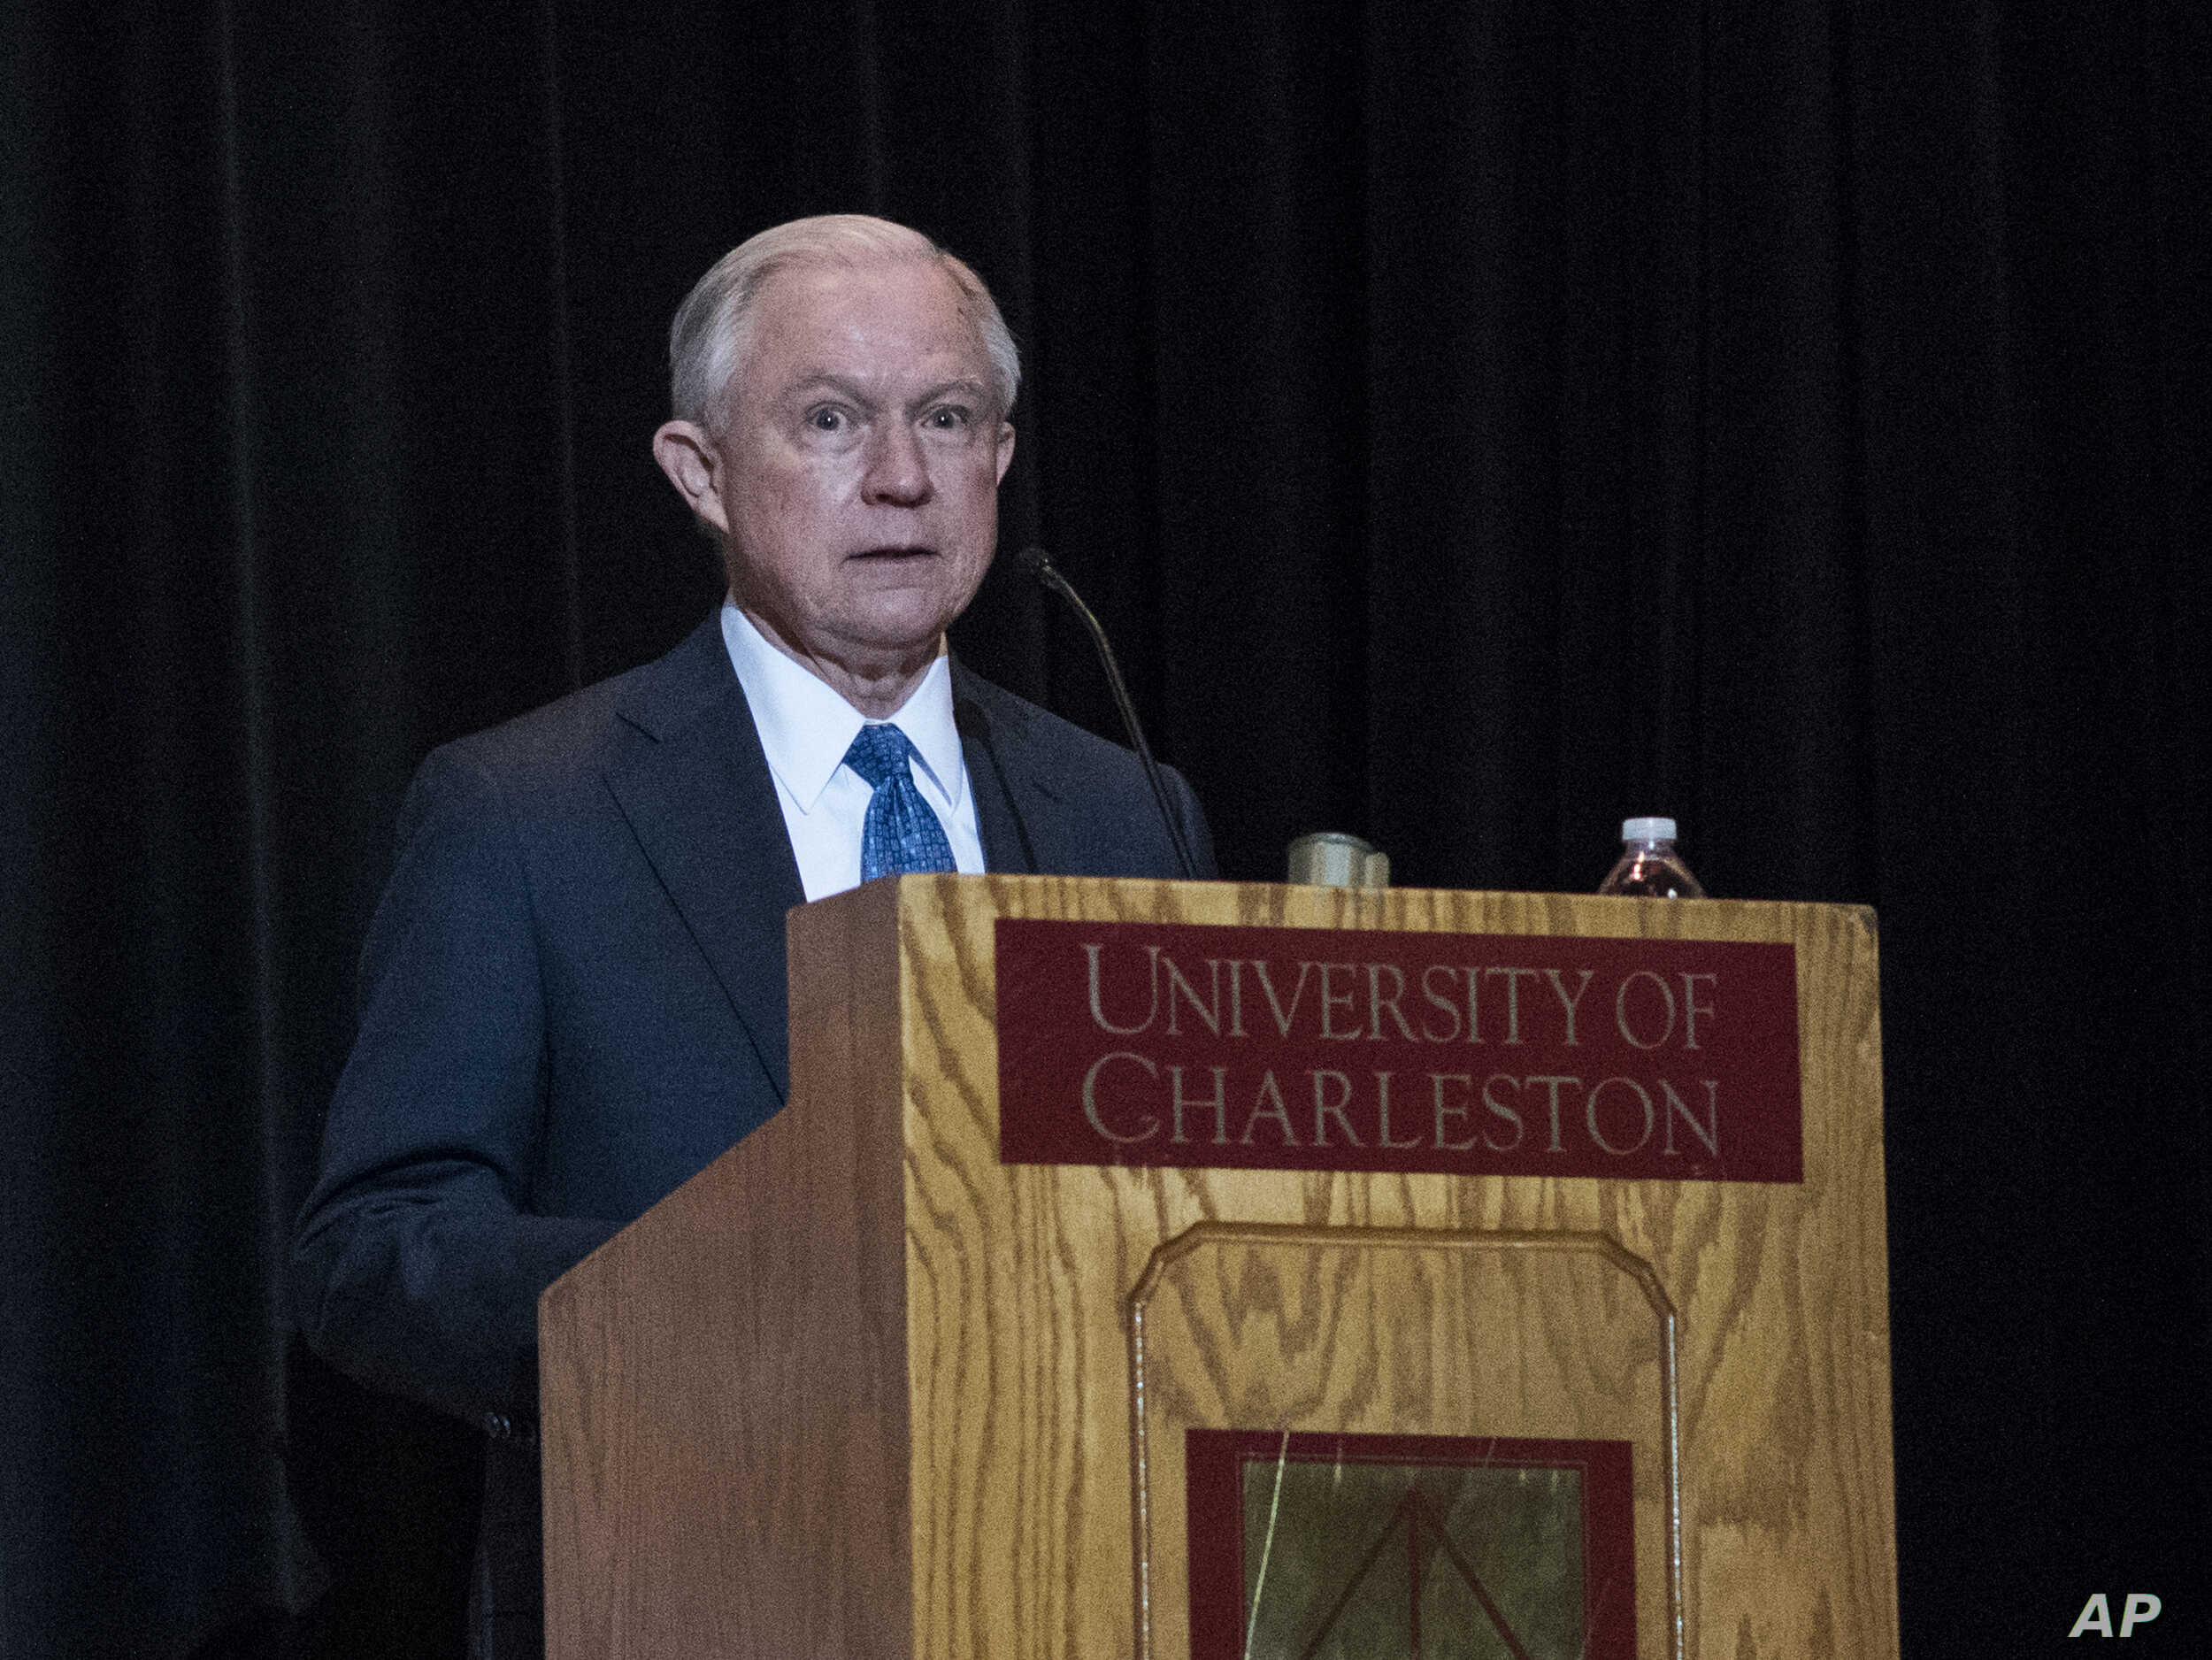 Attorney General Jeff Sessions addresses the crowd with opening remarks during a Drug Enforcement Administration (DEA) 360 Heroin and Opioid Response Summit at the University of Charleston, May 11, 2017, in Charleston, W.Va.